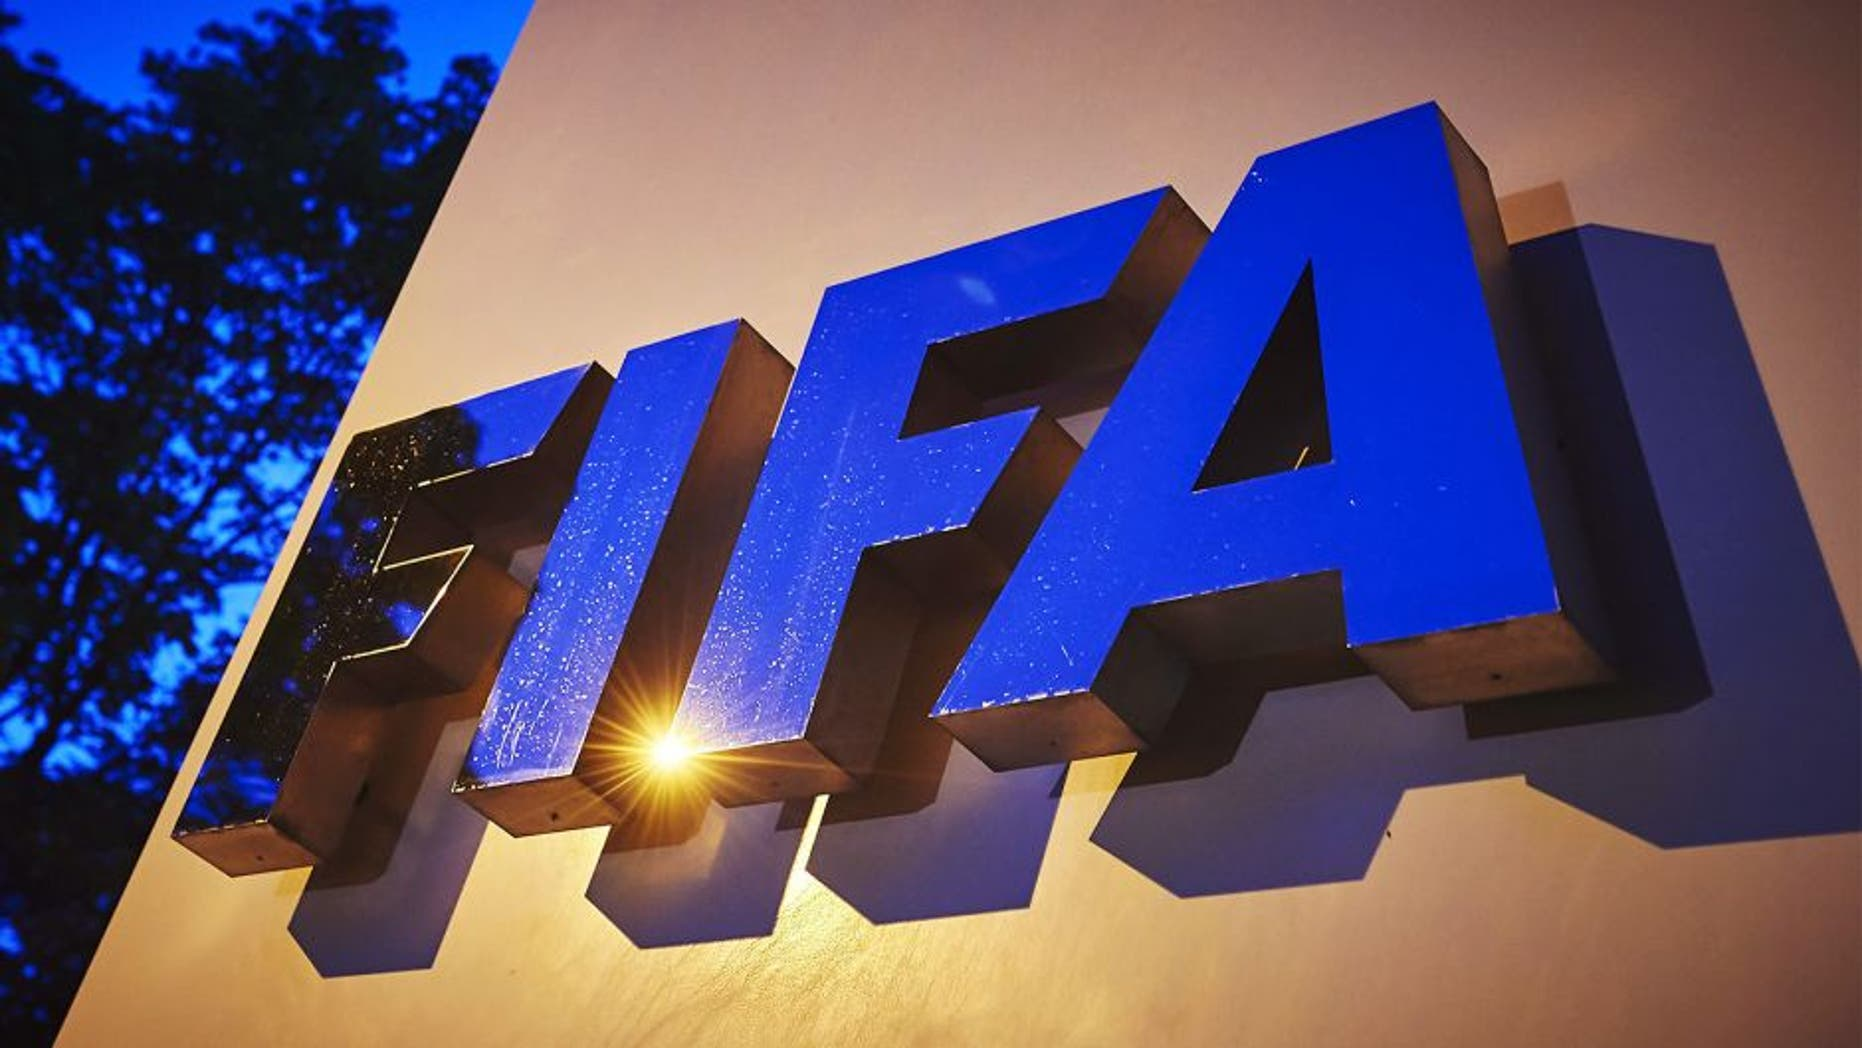 The FIFA logo is pictured at the FIFA headquarters on June 2, 2015 in Zurich. Blatter on June 2, 2015 resigned as president of FIFA as a mounting corruption scandal engulfed world football's governing body. The 79-year-old Swiss official, FIFA president for 17 years and only reelected on May 29, said a special congress would be called as soon as possible to elect a successor. AFP PHOTO / MICHAEL BUHOLZER (Photo credit should read MICHAEL BUHOLZER/AFP/Getty Images)